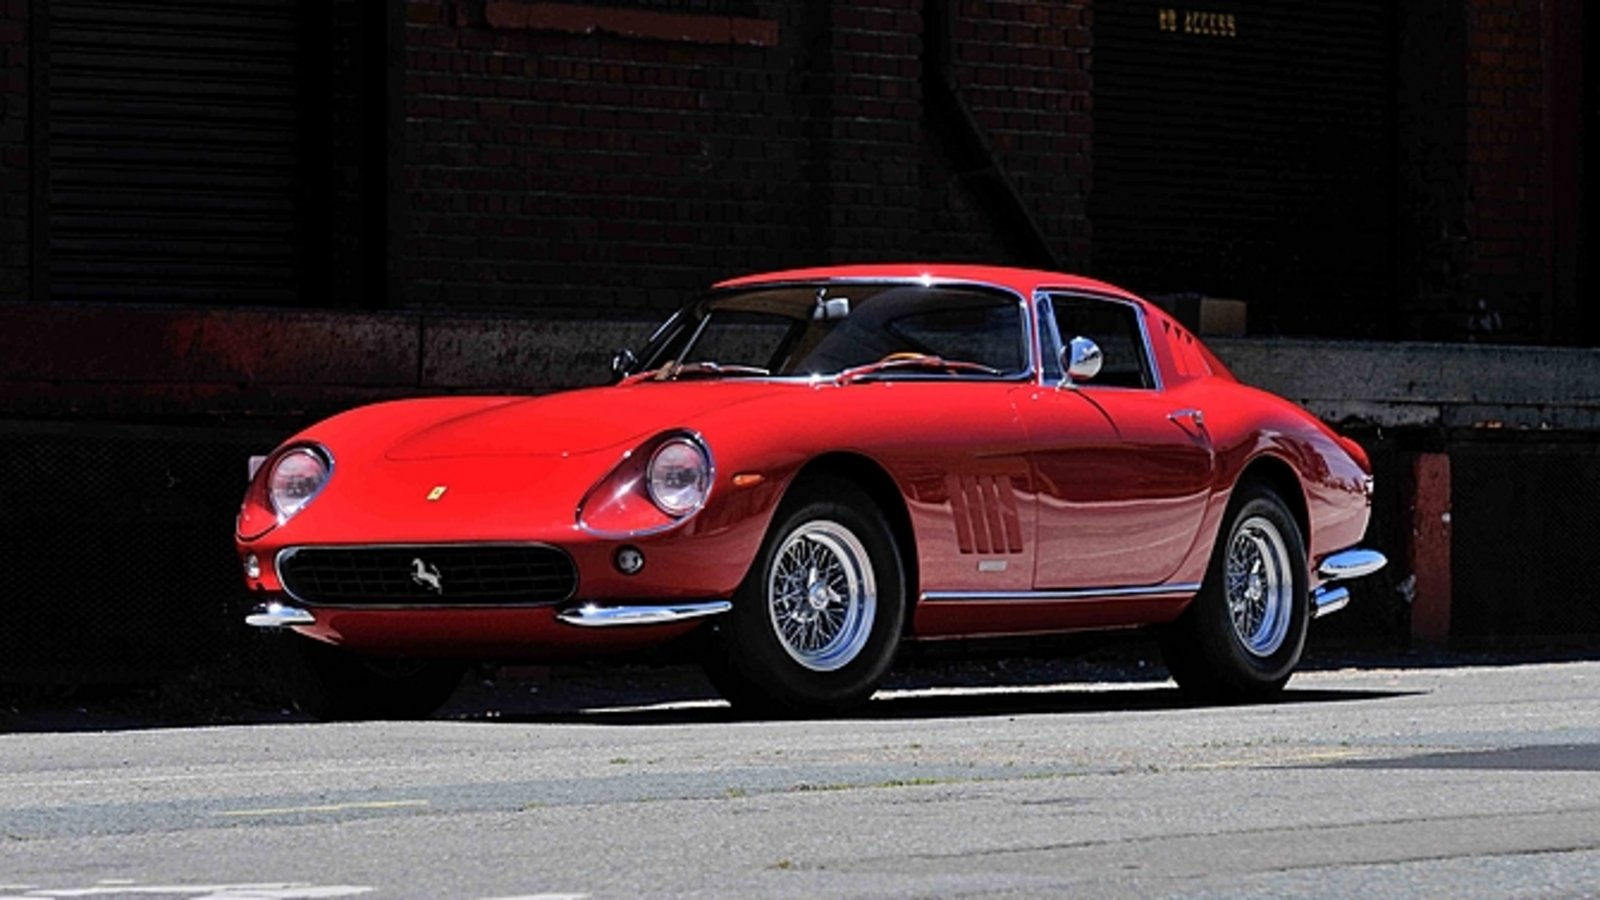 Most Expensive Car In The World >> 1965 Ferrari 275 GTB Auctioned For $2.1 Million News - Gallery - Top Speed